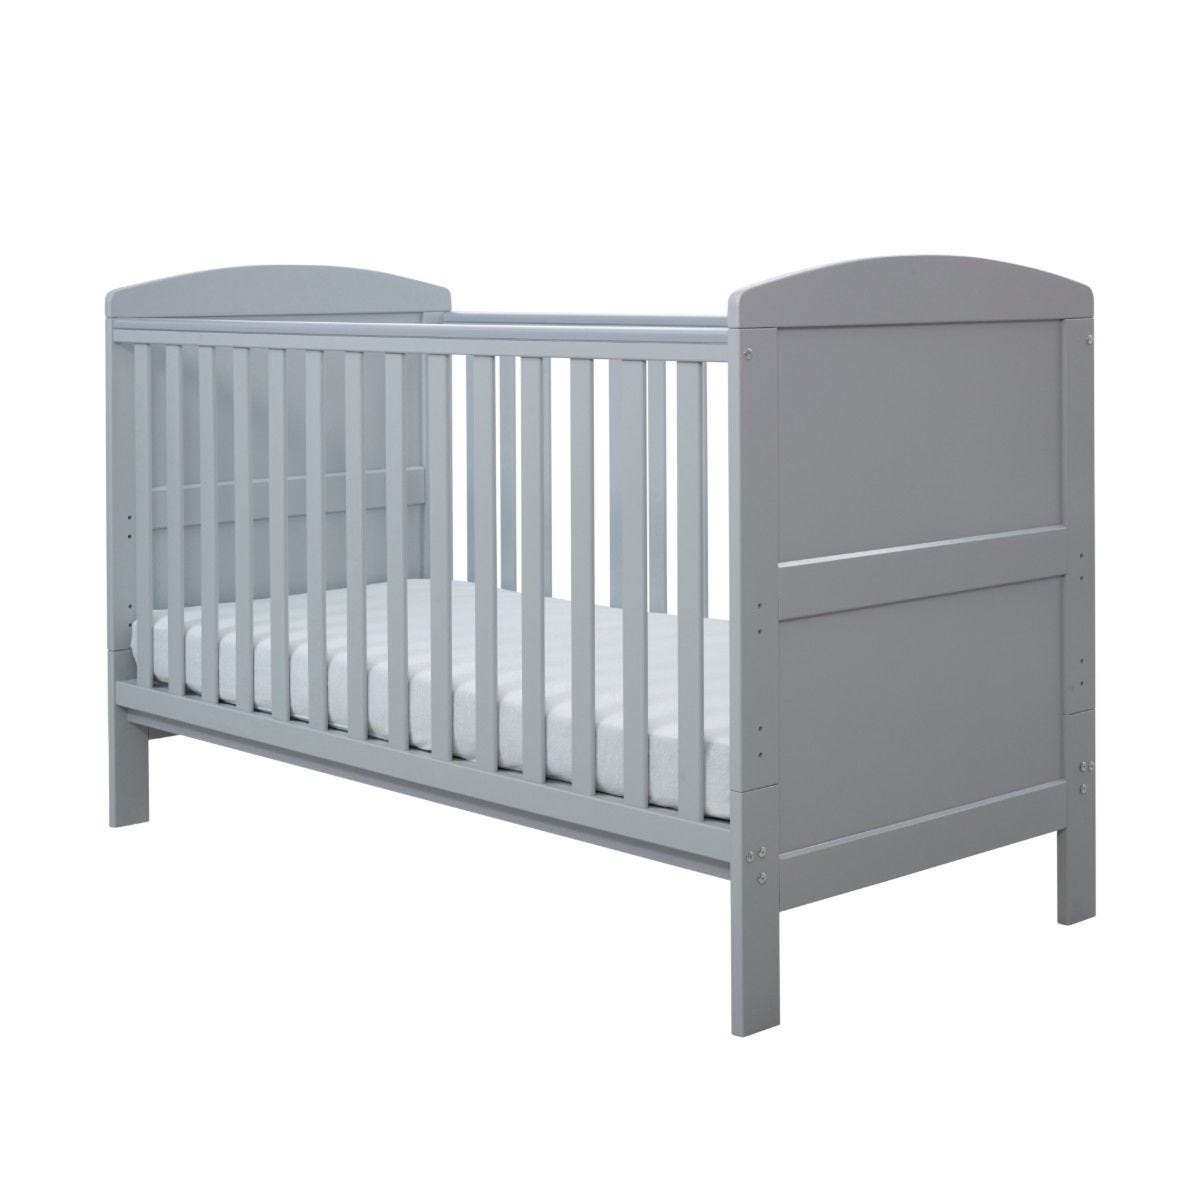 Ickle Bubba Coleby Classic Cot Bed and Sprung Mattress Grey